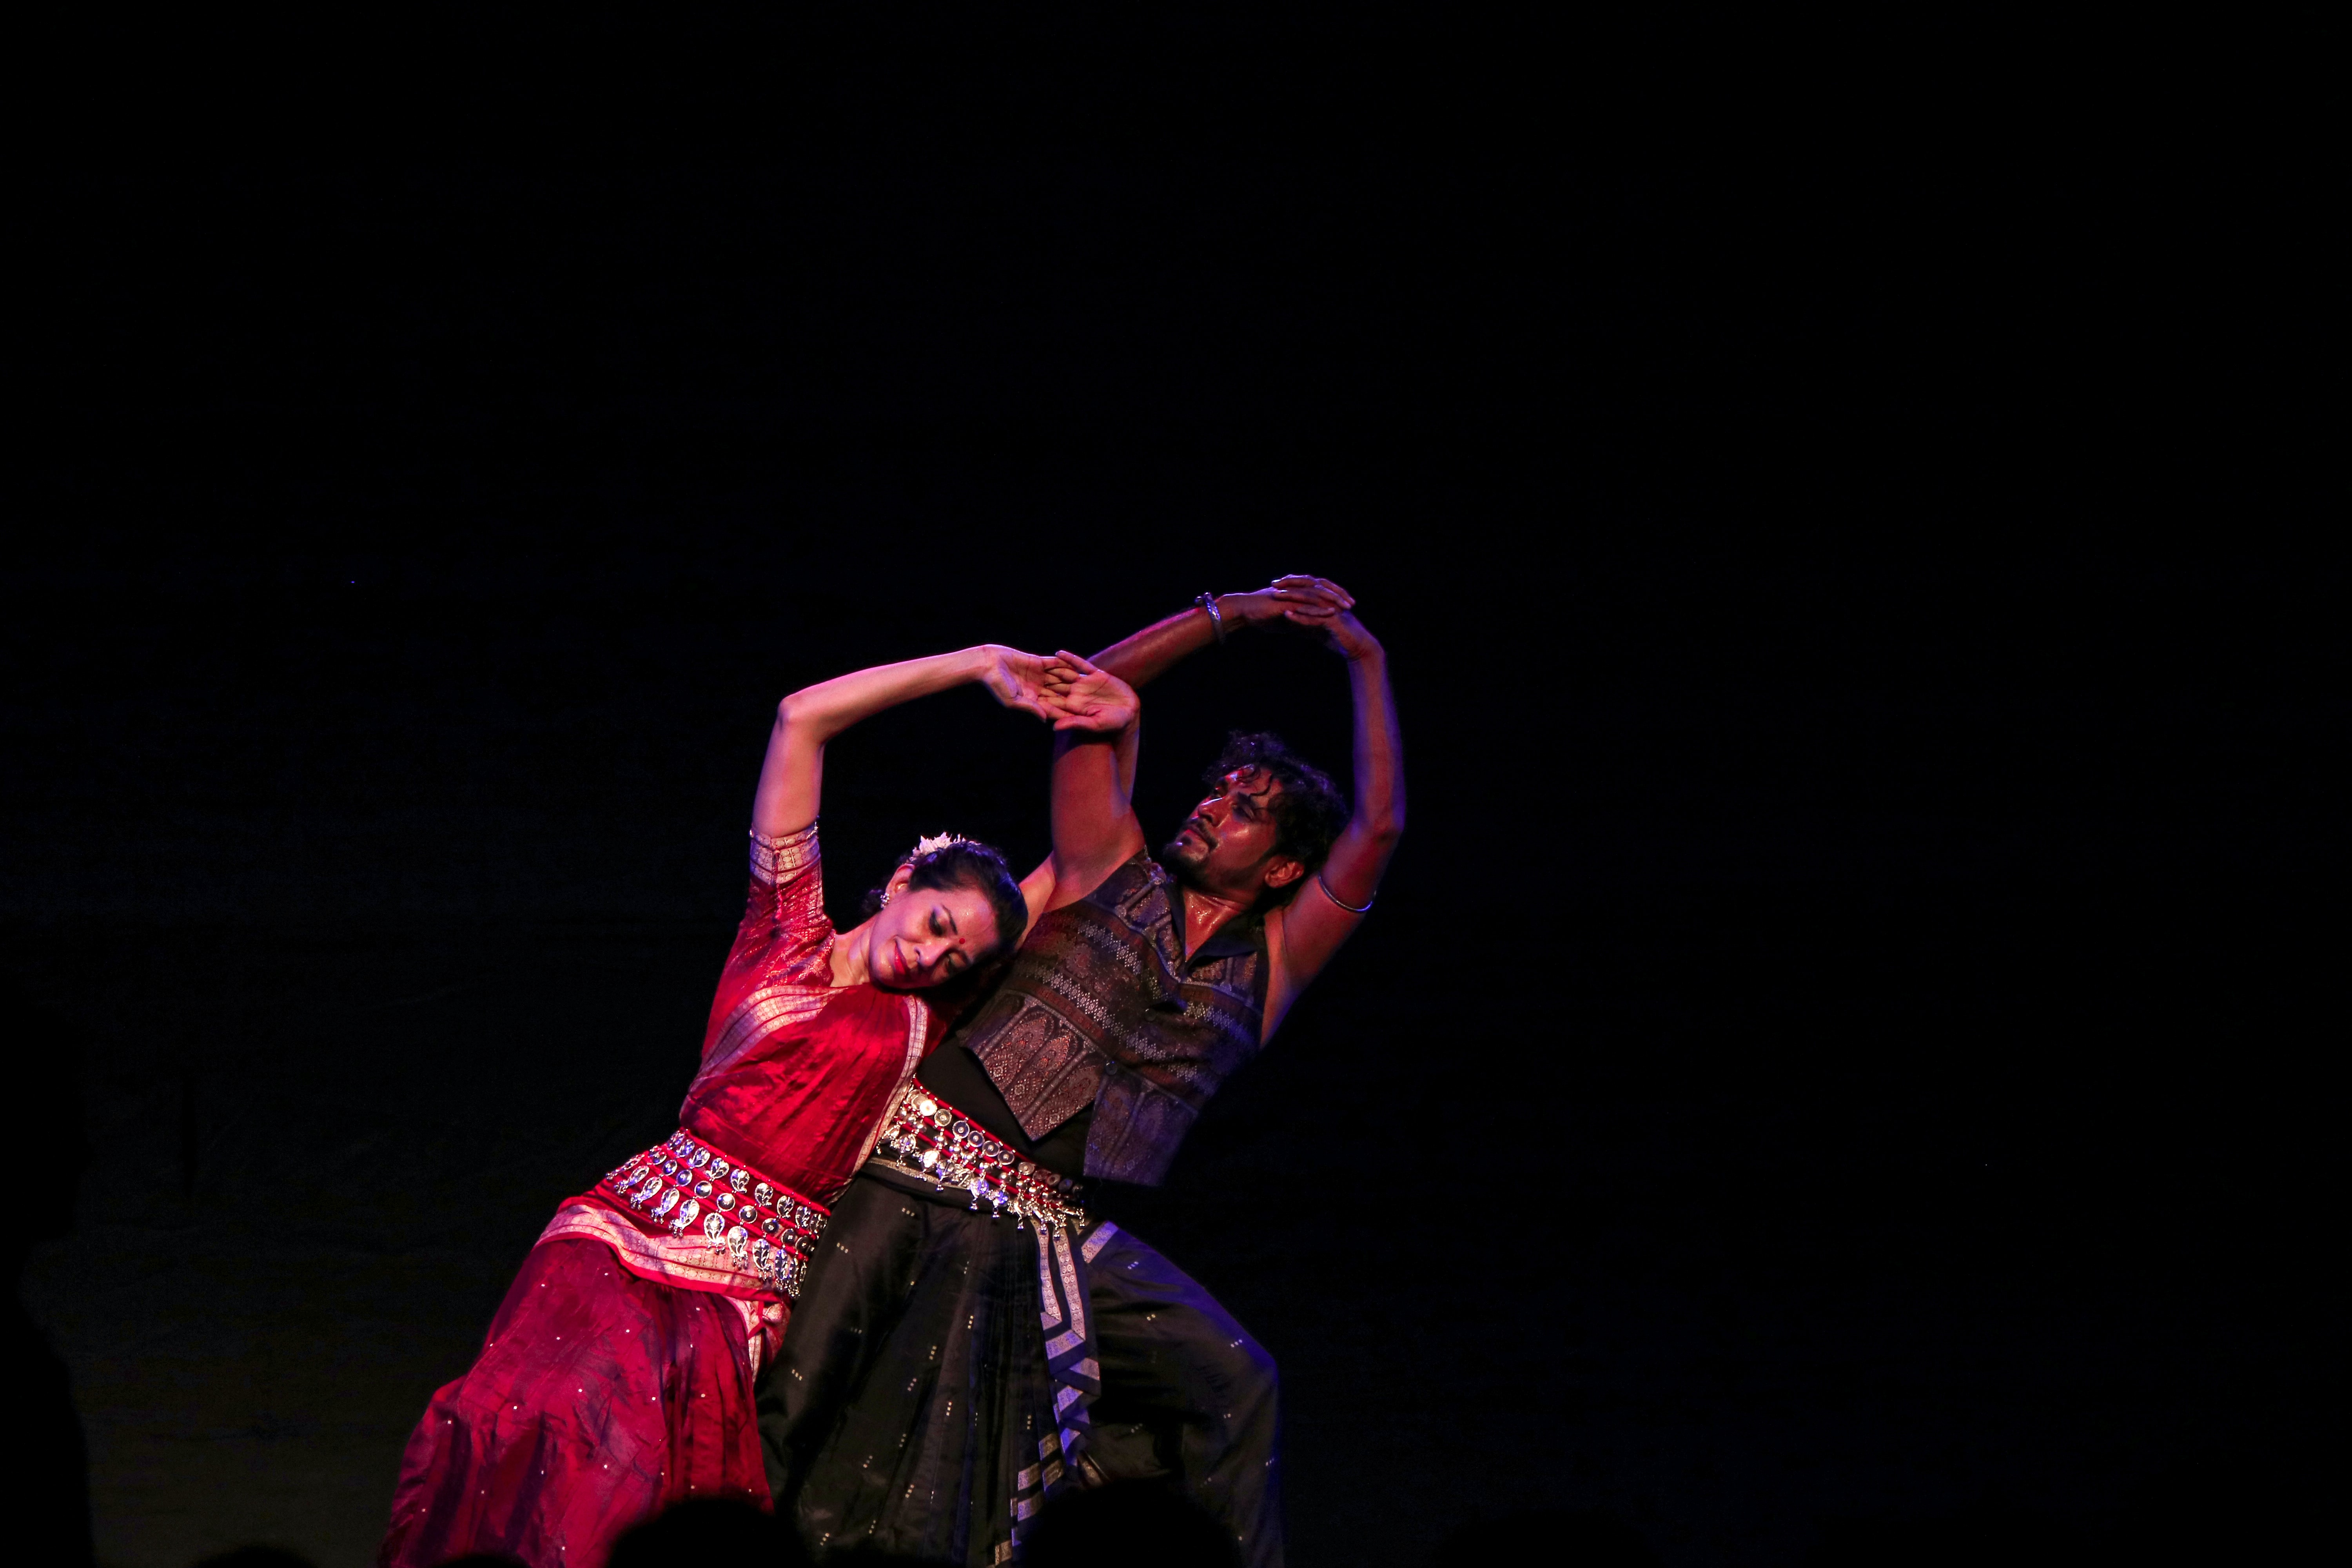 Bollywood-Inspired Dance Fitness Class | Choreographed Routines to Indian Folk, Bhangra, & Bollywood Music 3